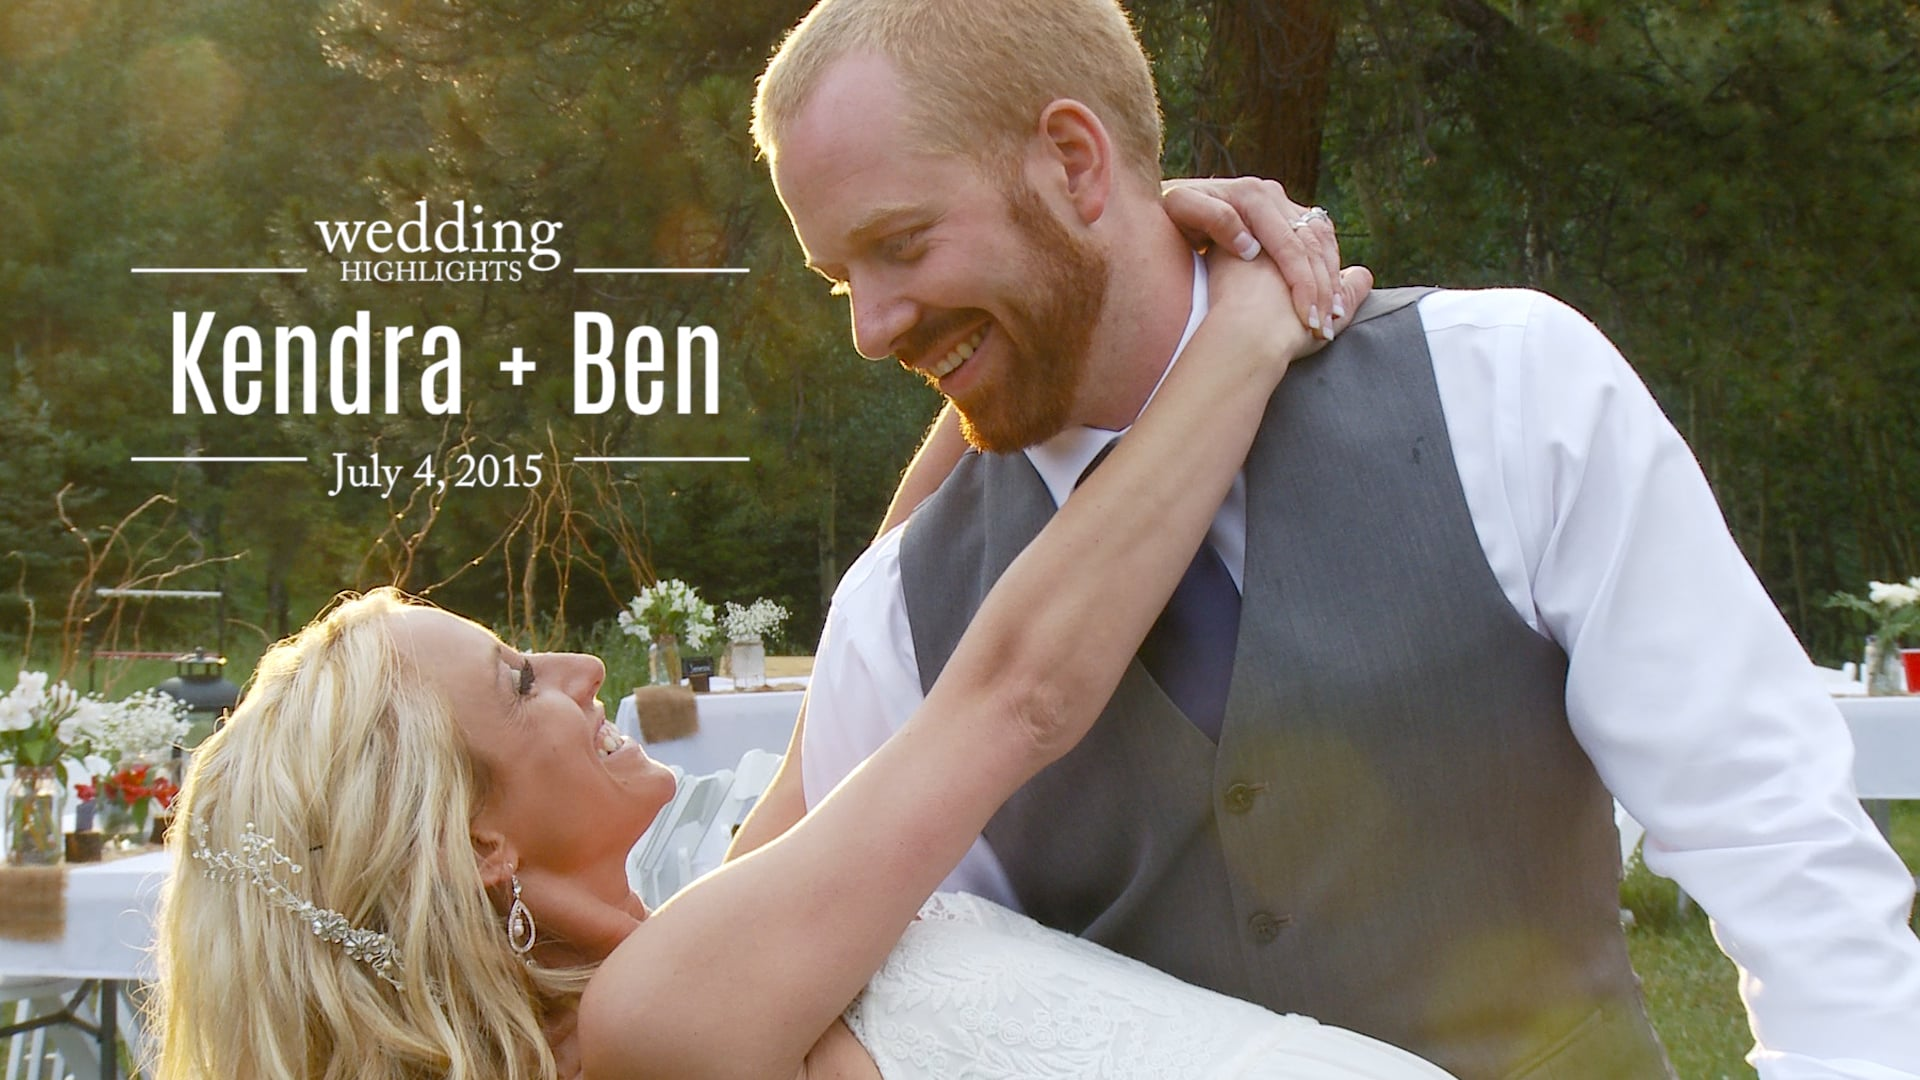 Kendra and Ben Wedding Highlights